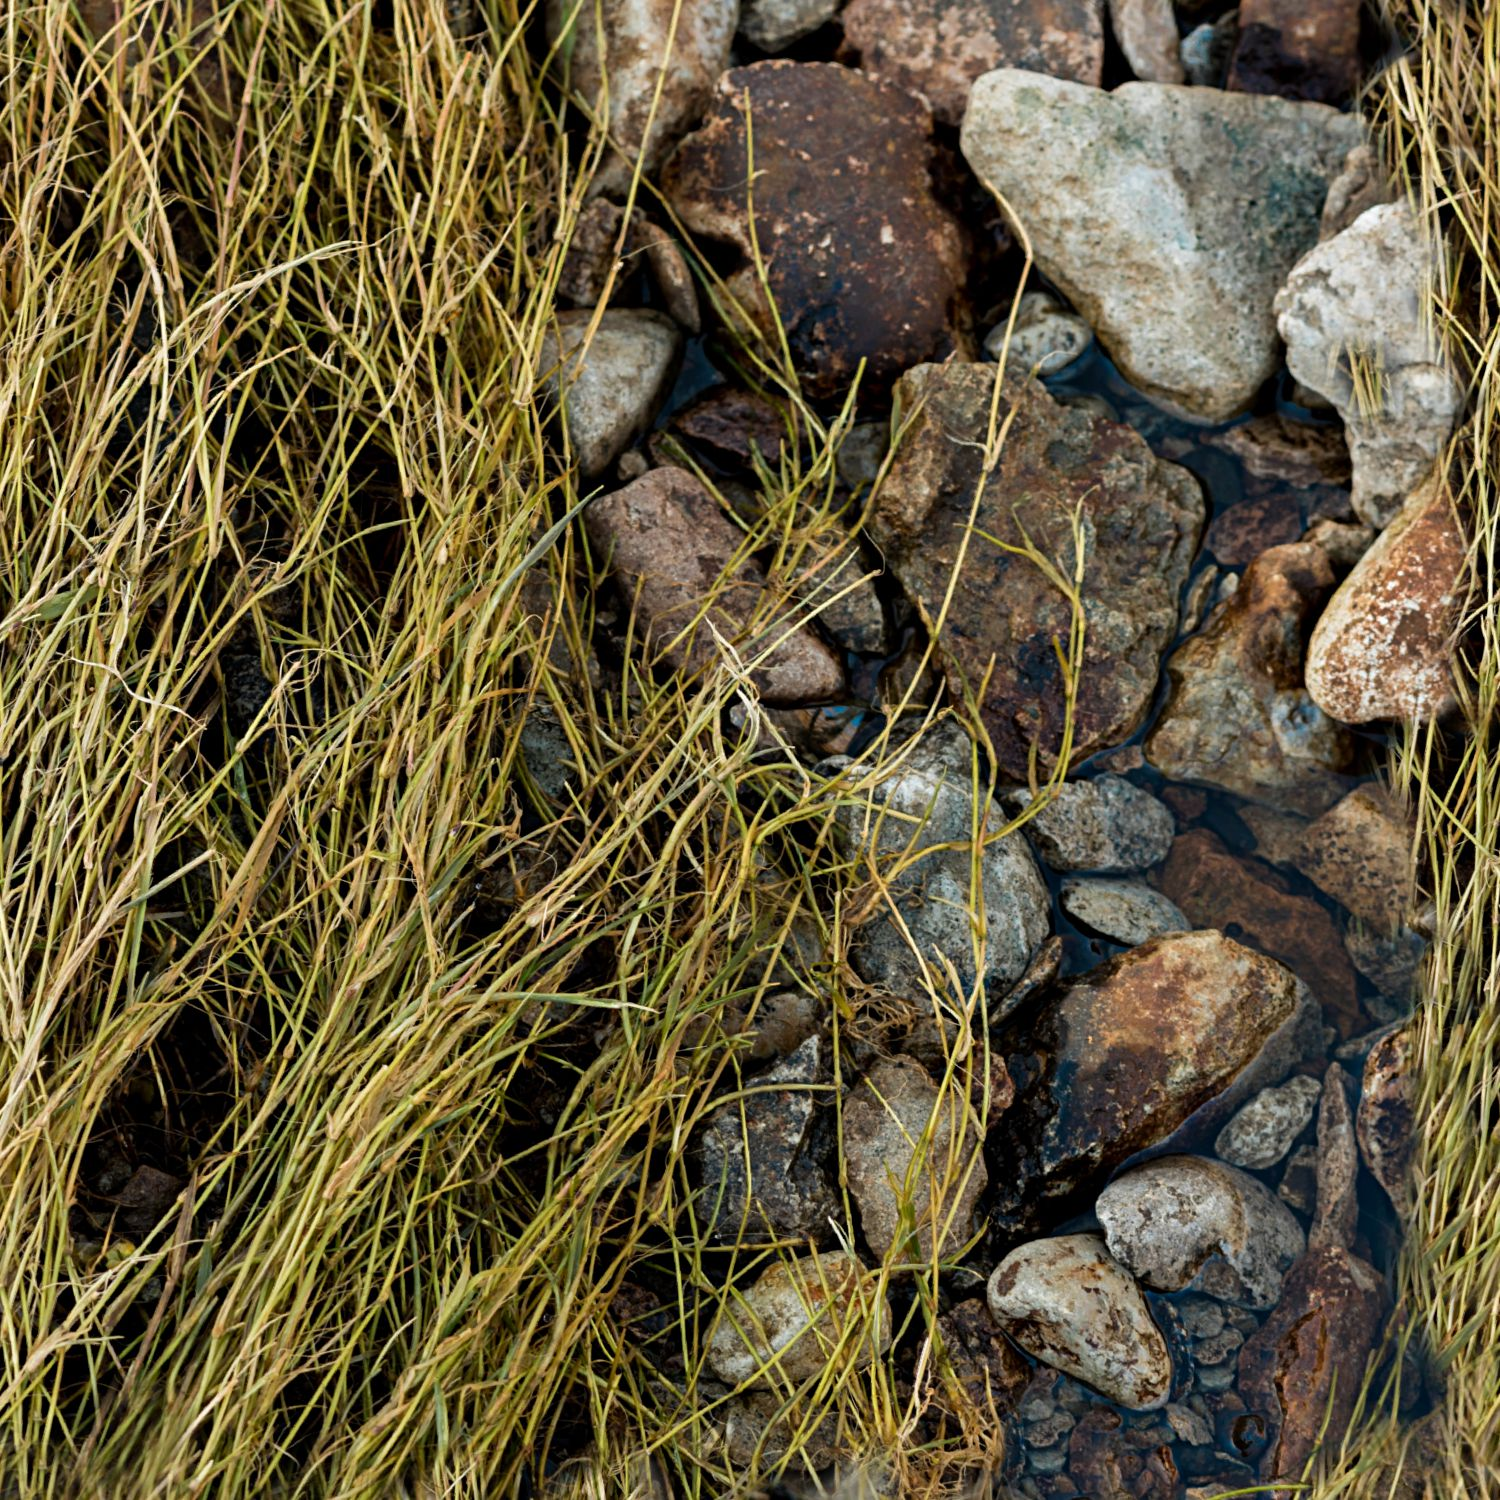 Rock and Grass Camouflage